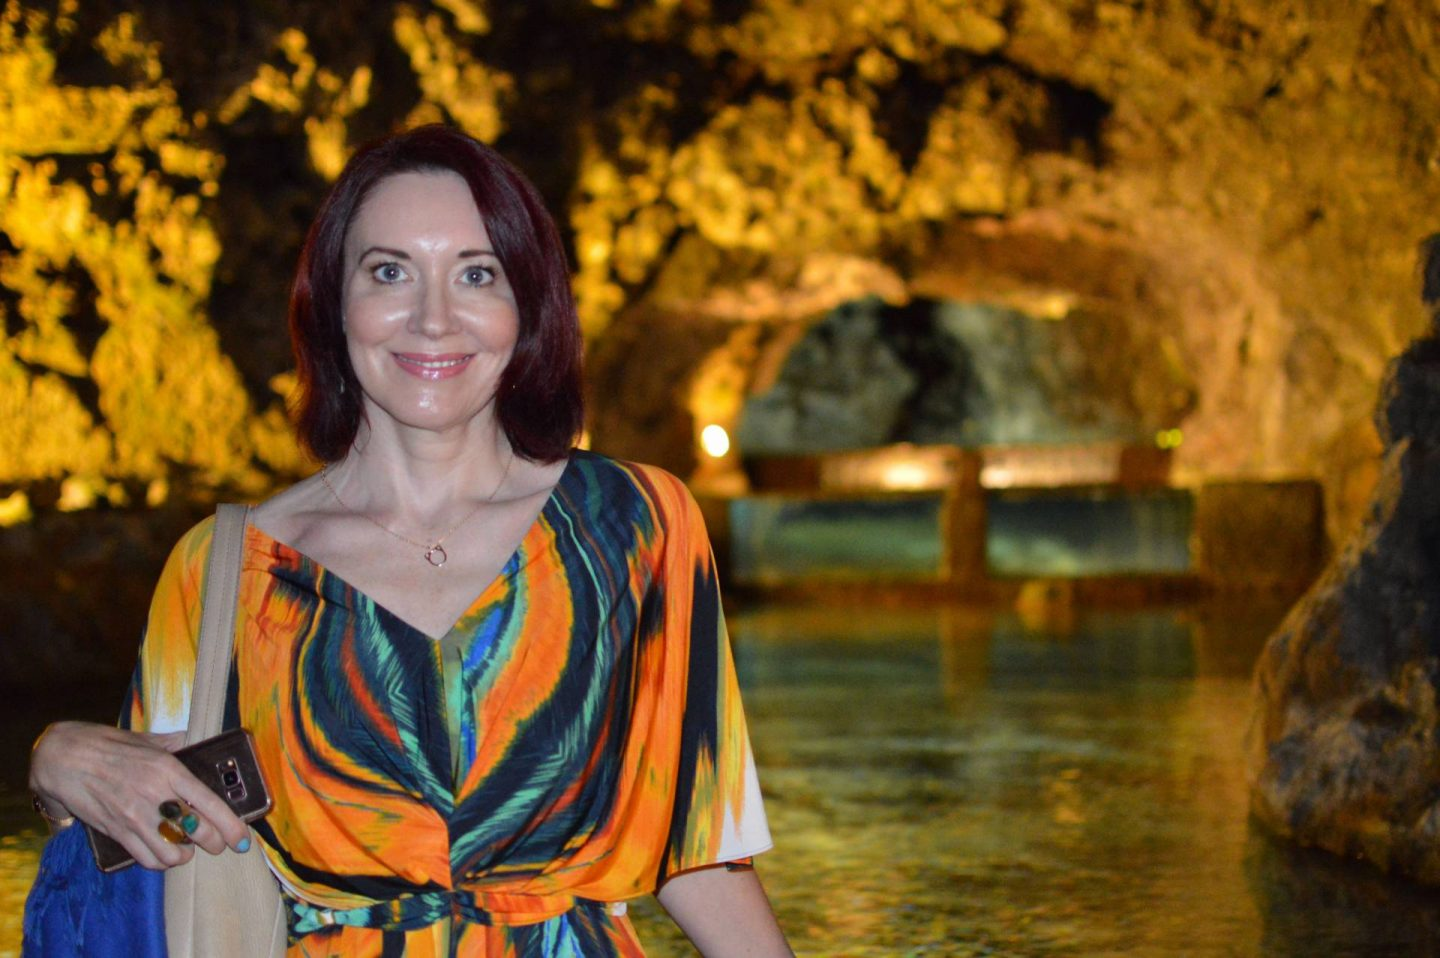 Tropical Print Batwing Dress, inside the São Vicente caves, Madeira